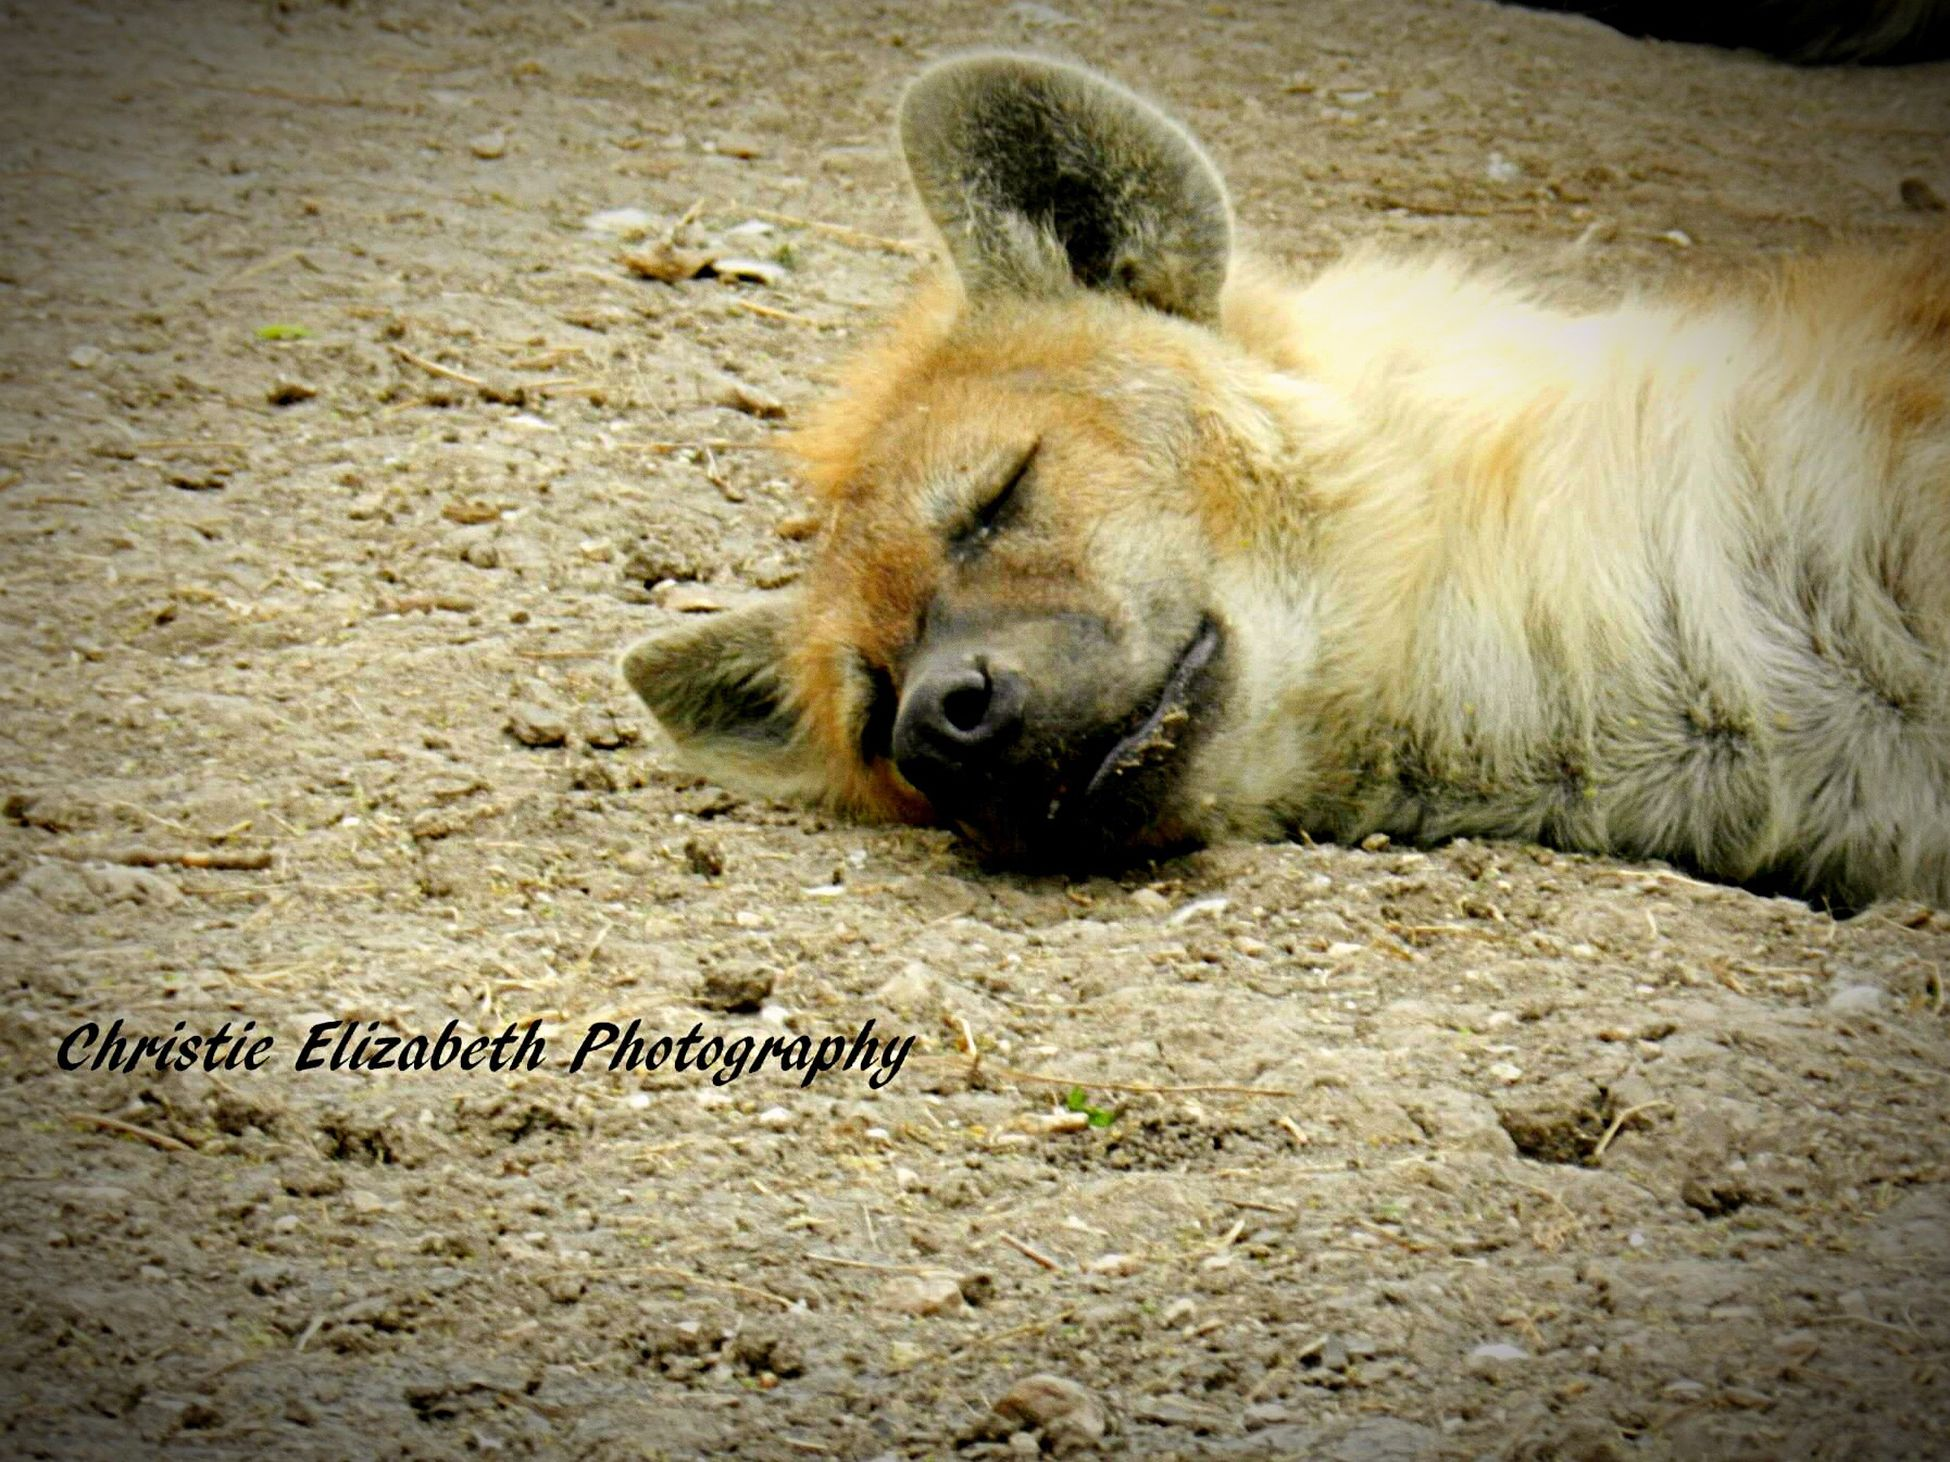 Wildlife Nature Animal Animal_collection Animal Photography Animal Love New Braunfels TX Newbraunfels New Braunfels Texas New Braunfels Summertime In NEW Braunfels Texas Animals Animals In The Wild Animal Portrait Animallovers Animal Themes Sand Animalphotography Sleeping Nature_collection Nature Photography Naturelovers Nature_perfection Nature_collection